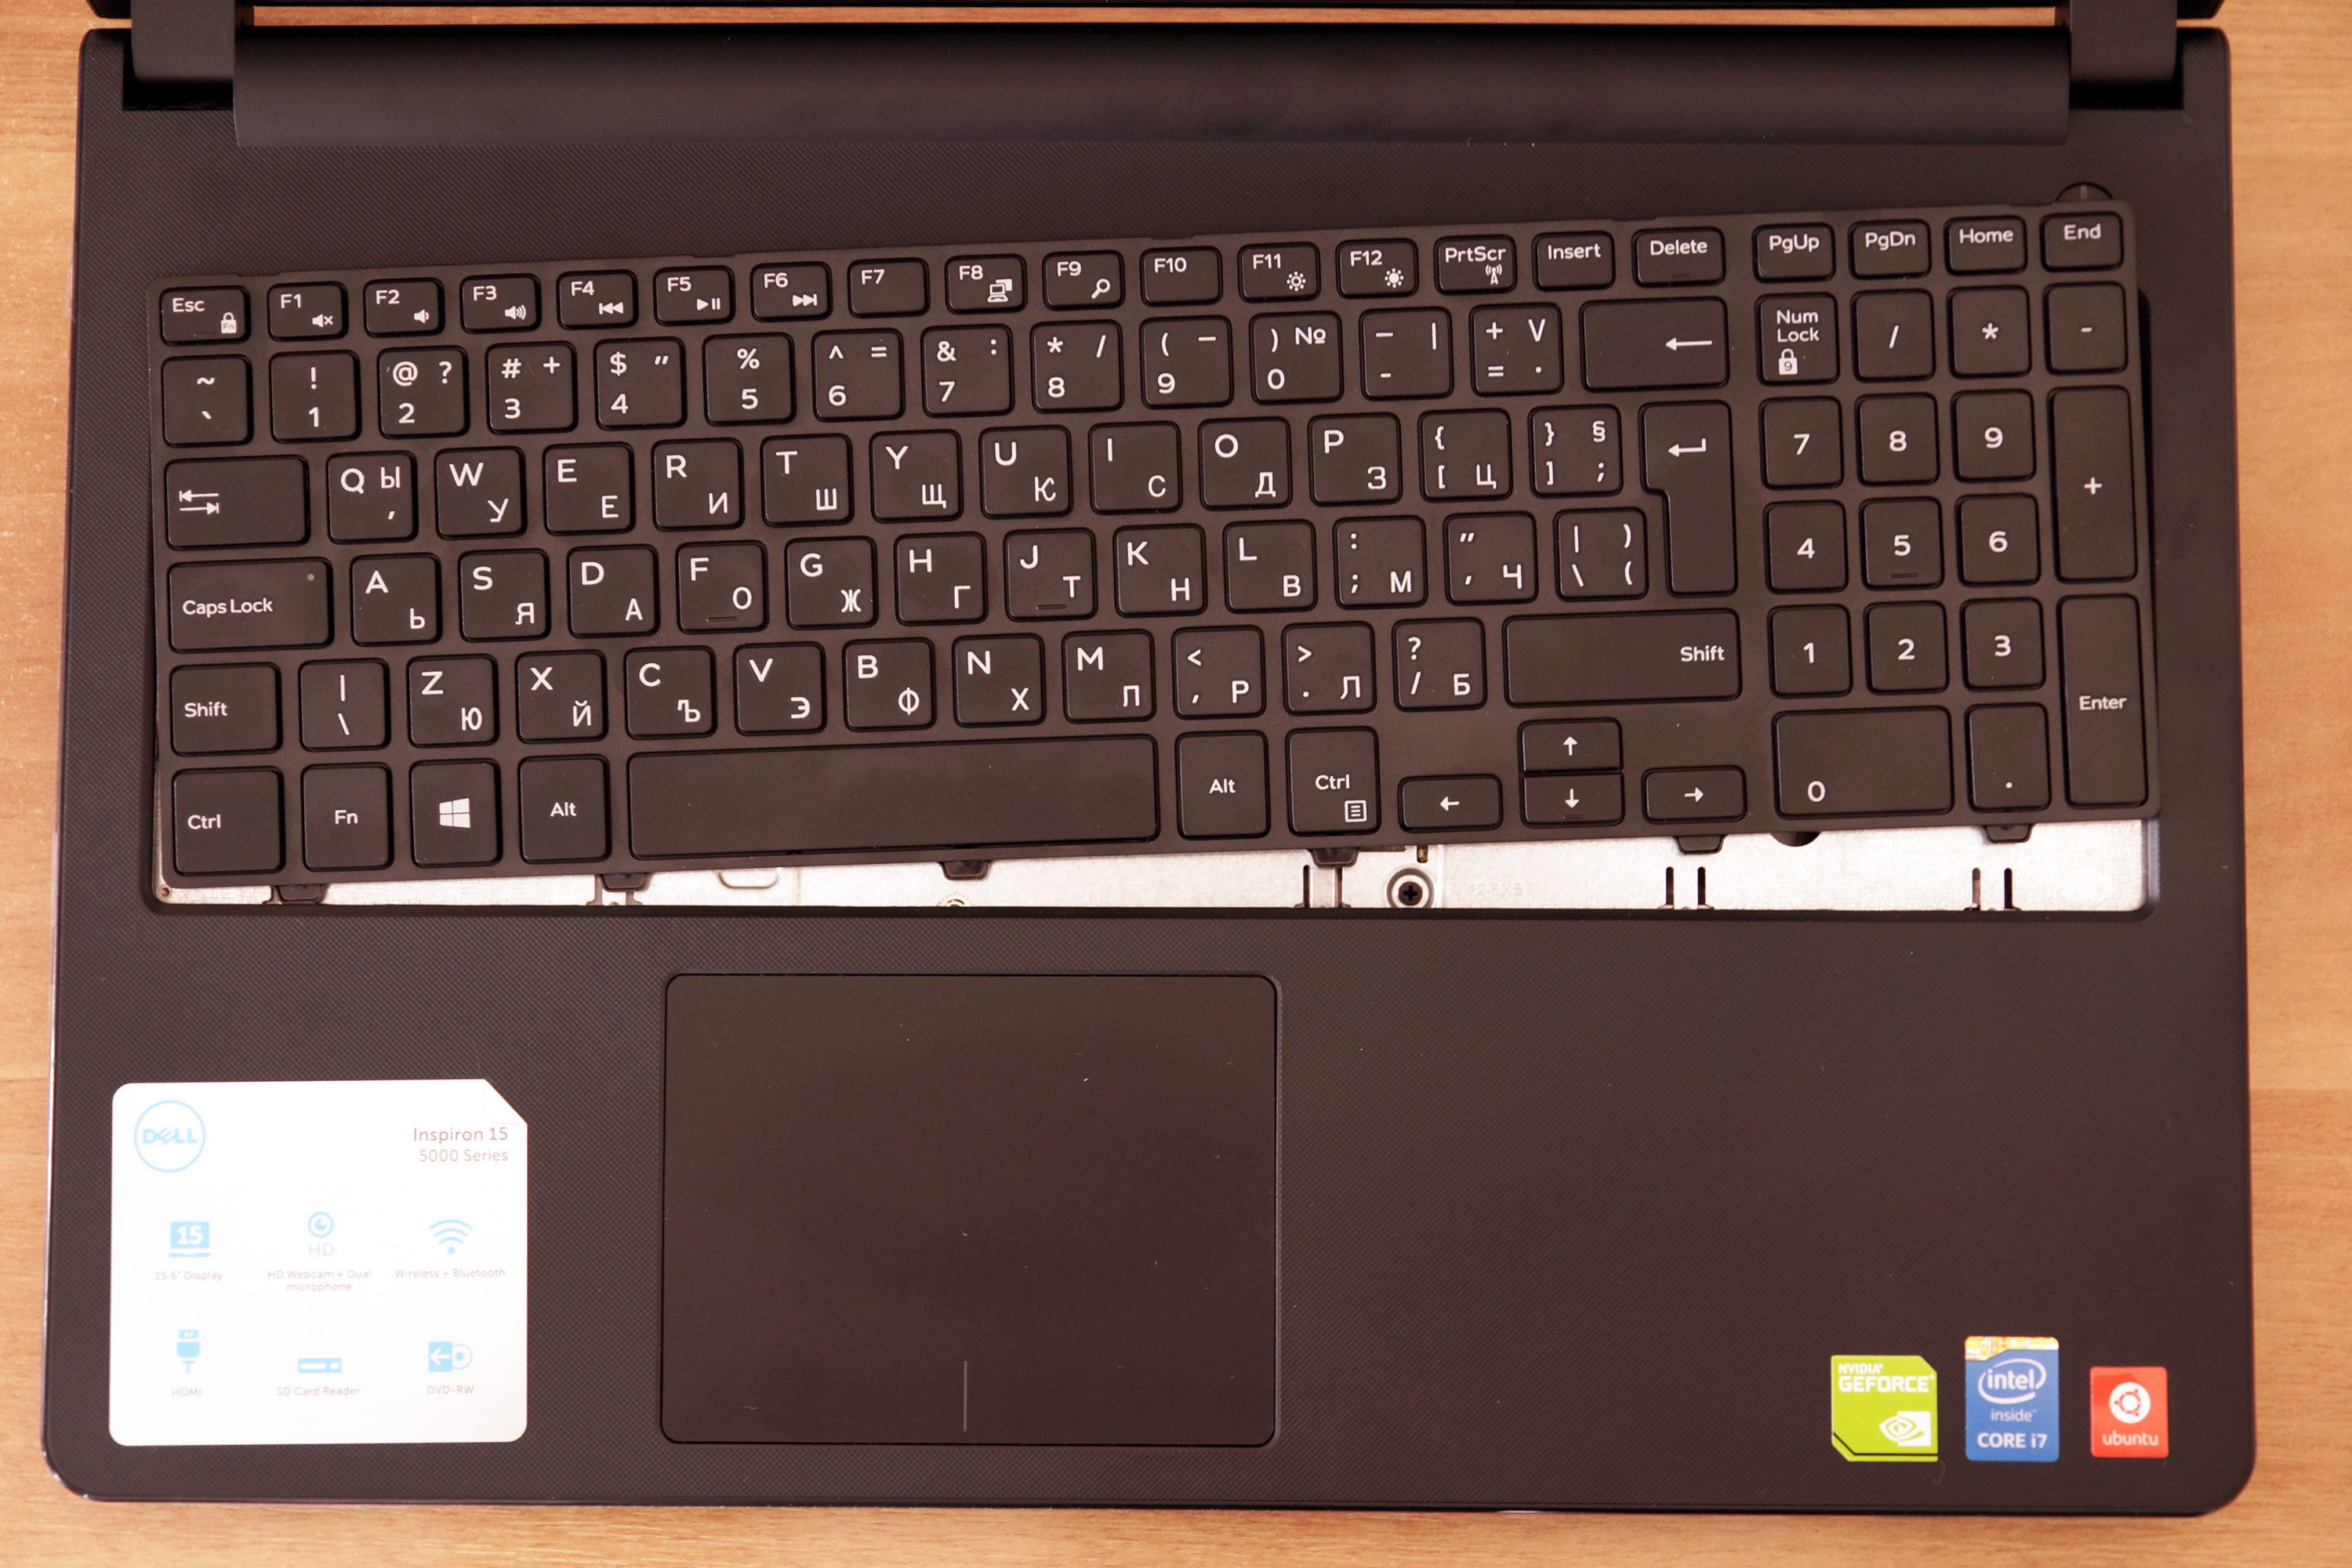 How To Remove Battery On Dell Inspiron 15 5000 Dell inspiron